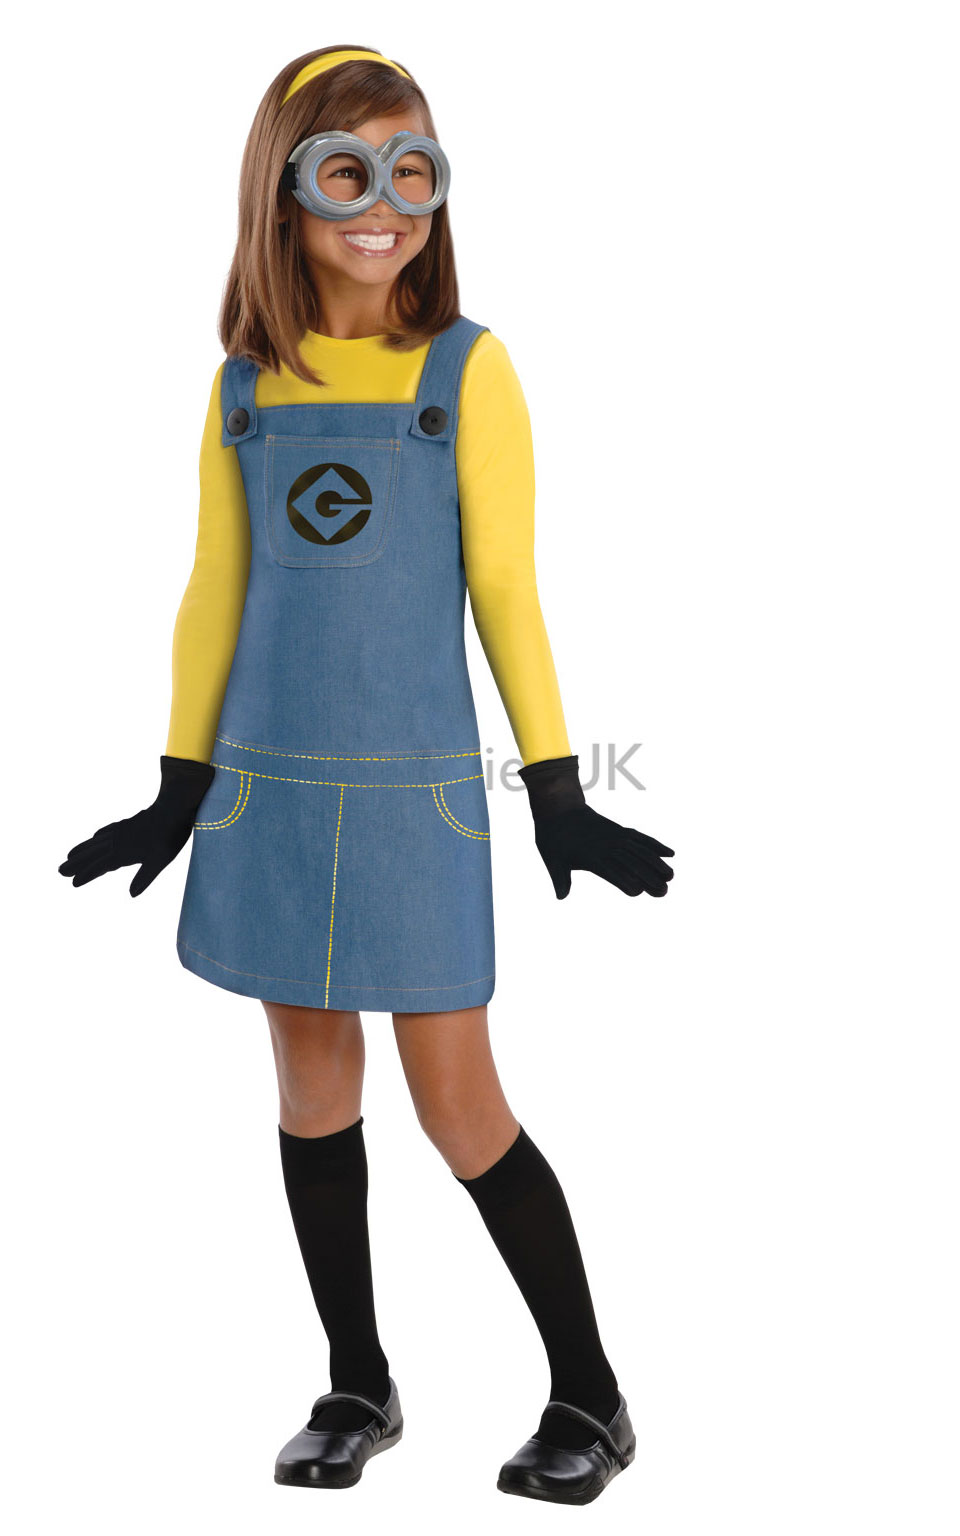 Despicable Me 2 - Child Female Minion